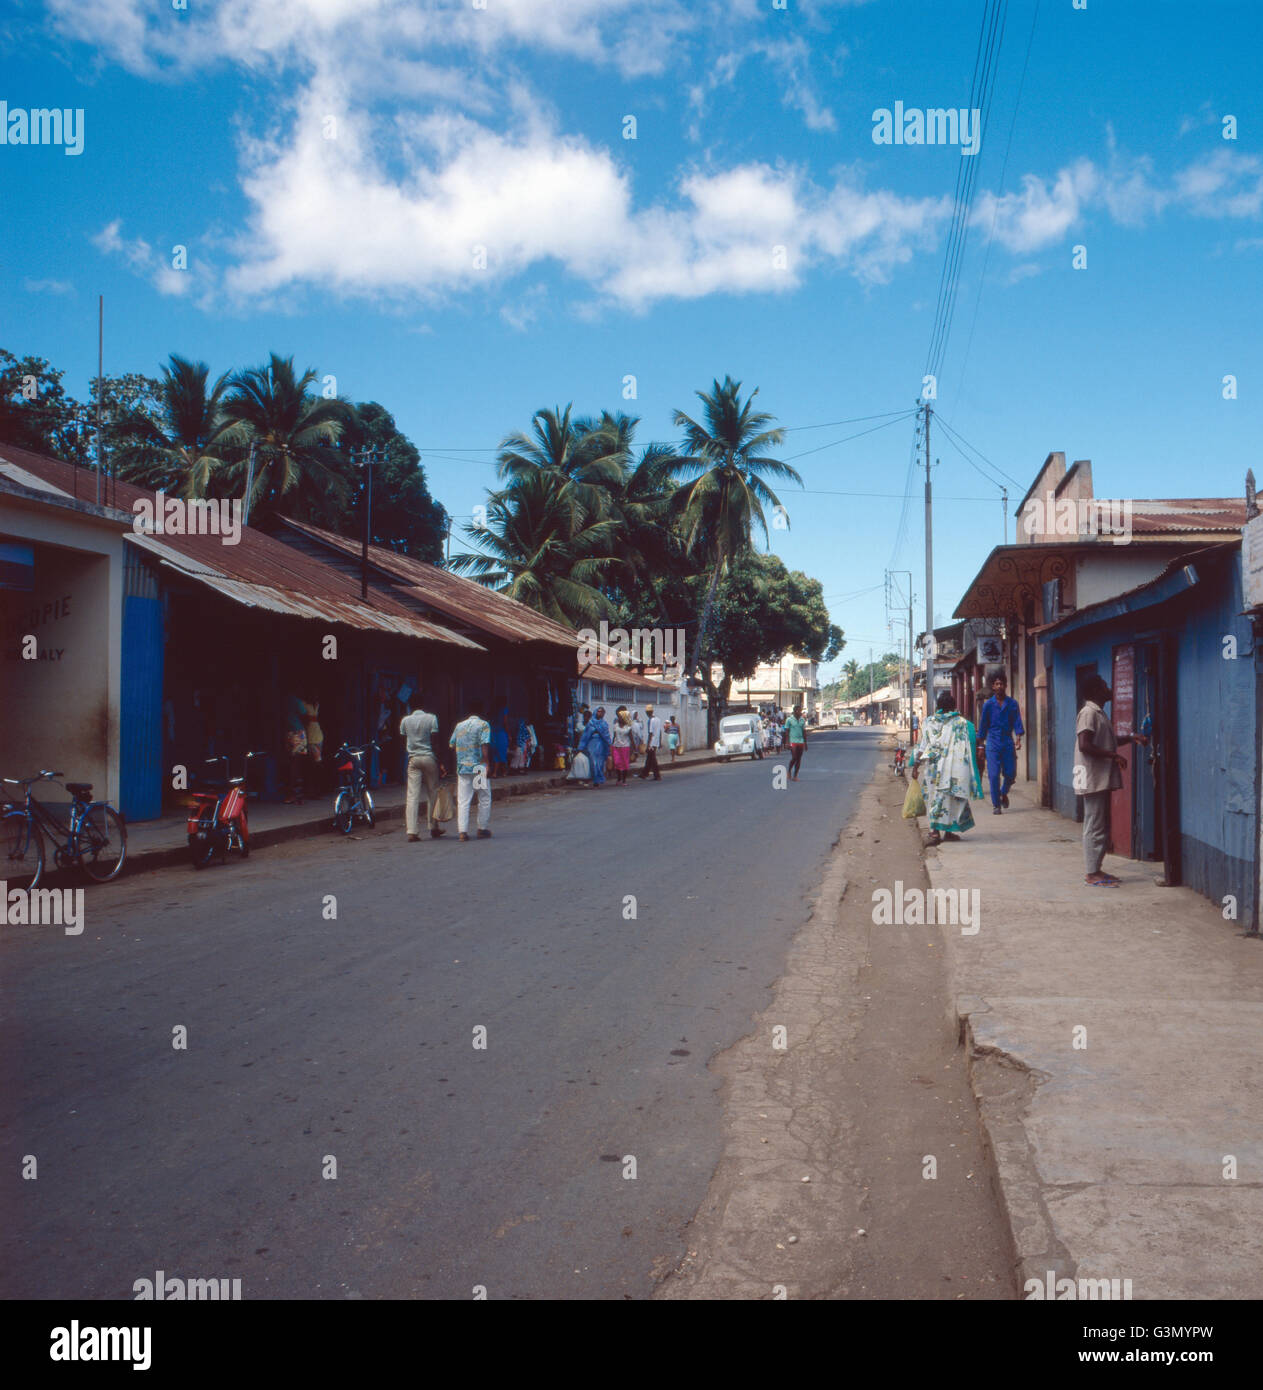 Straßen in Andoany, der Hauptstadt von Nosy Be, Madagaskar 1989. The streets of Andoany, capital of Nosy Be, - Stock Image